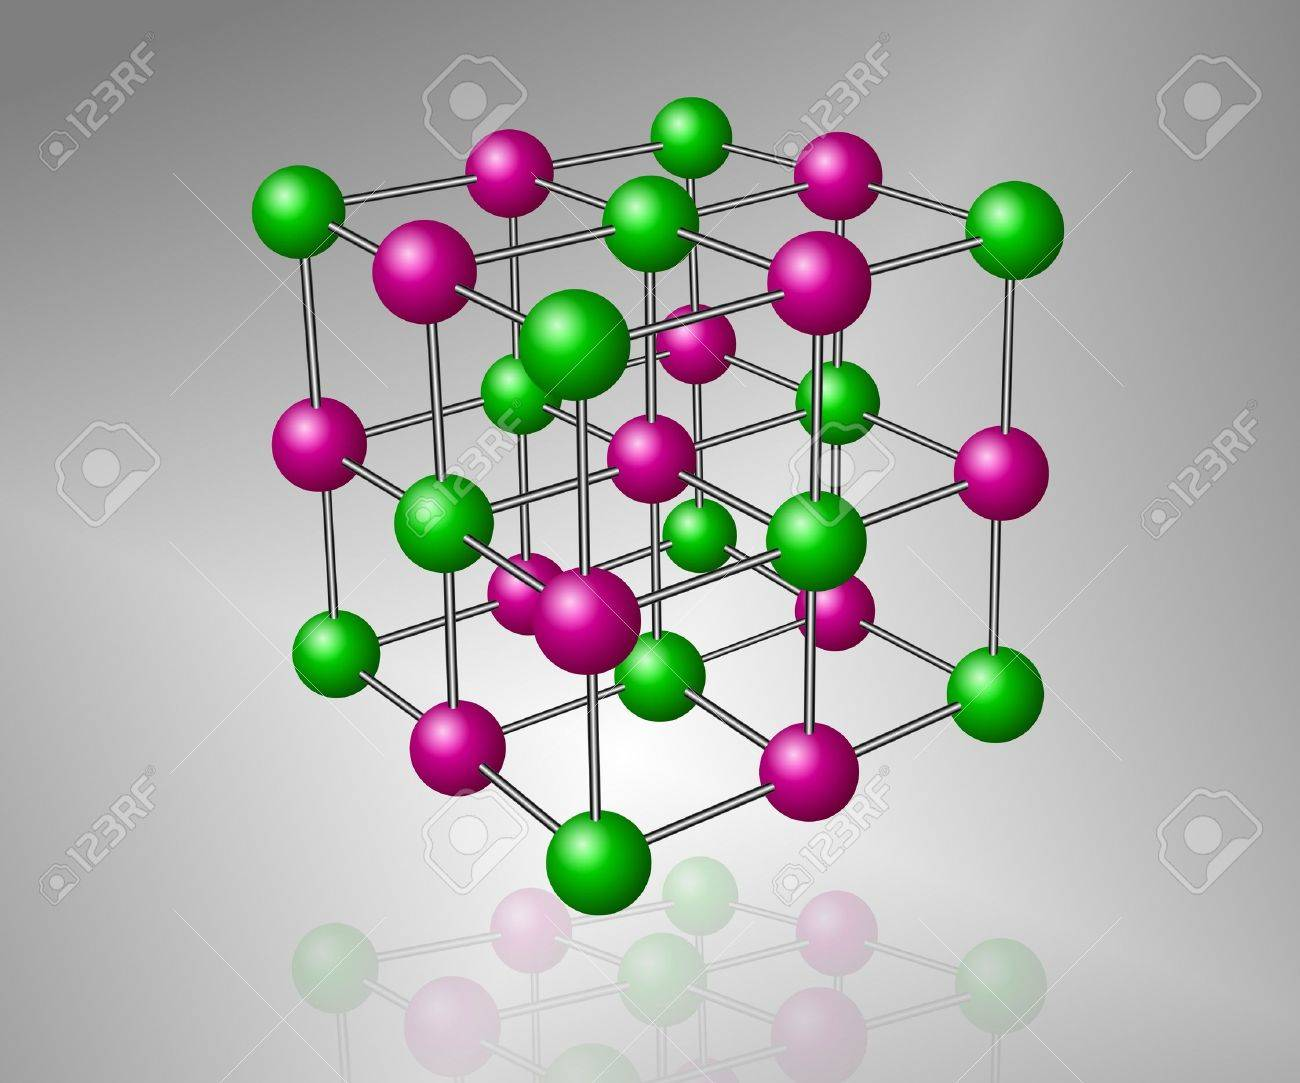 hight resolution of crystalline structure model of sodium chloride molecule stock photo 10440700